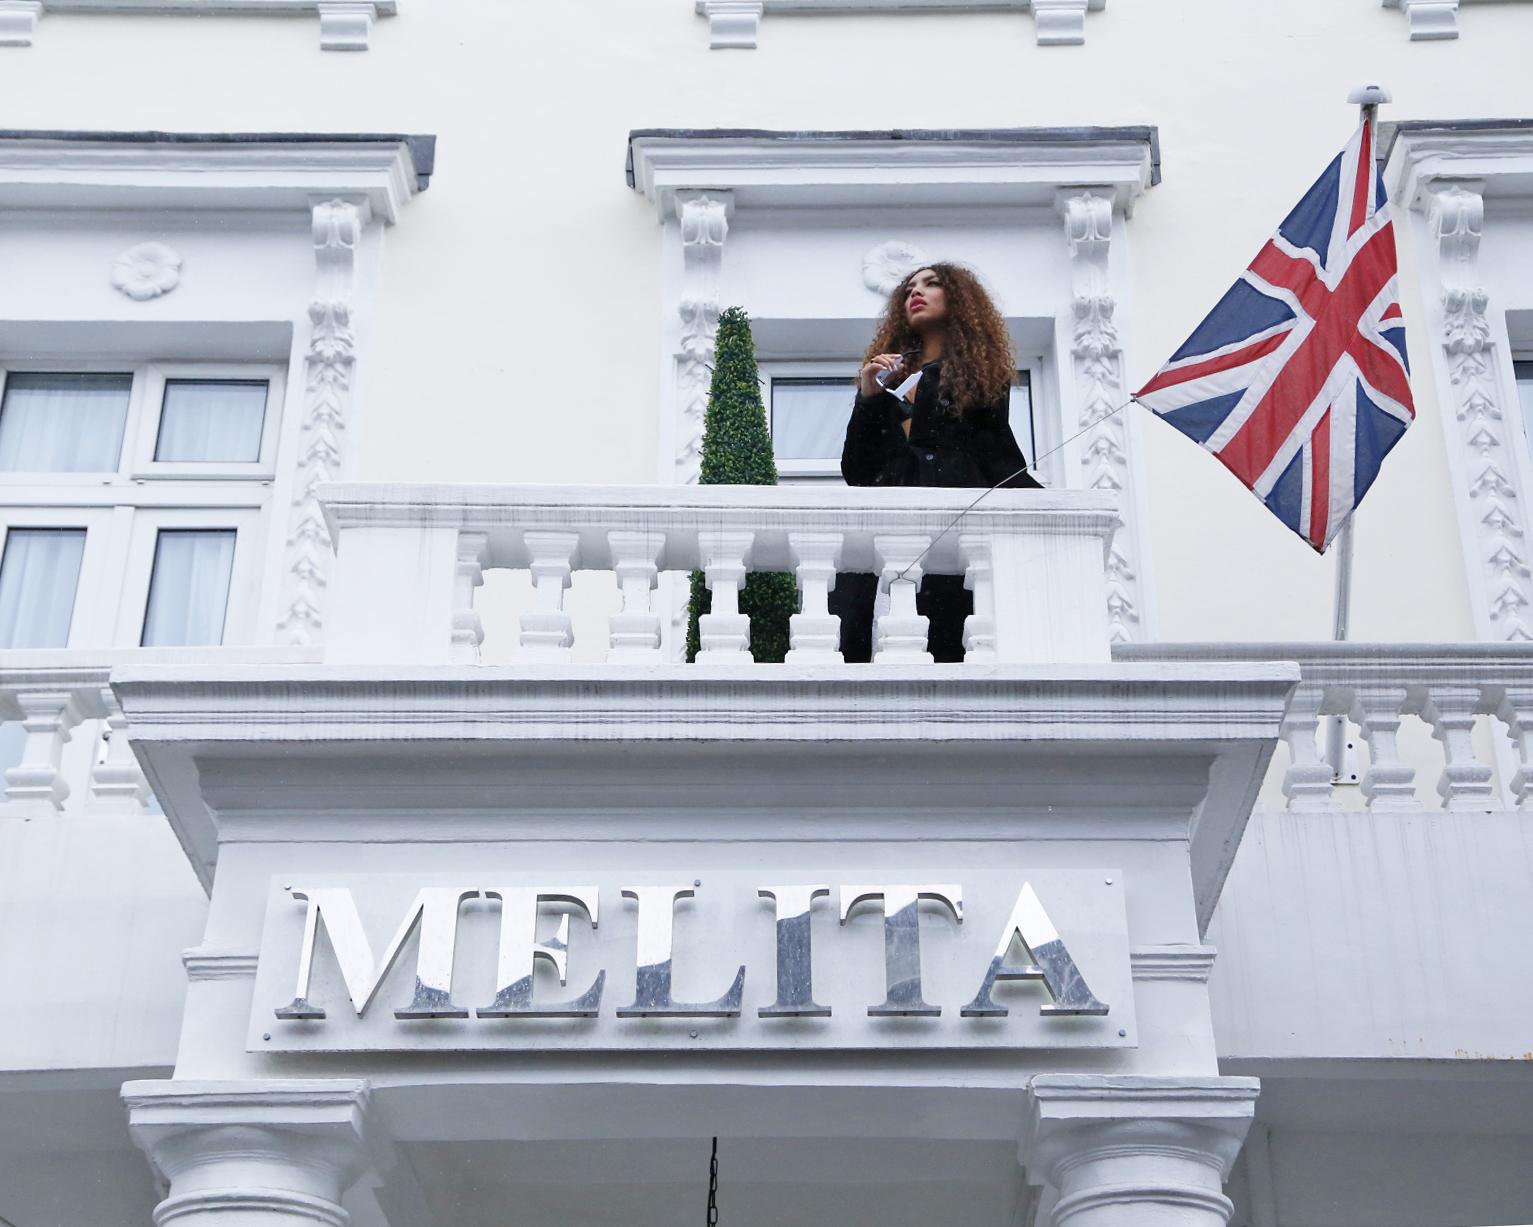 Hotel Melita Hotel Review Melita Hotel London From Hats To Heelsfrom Hats